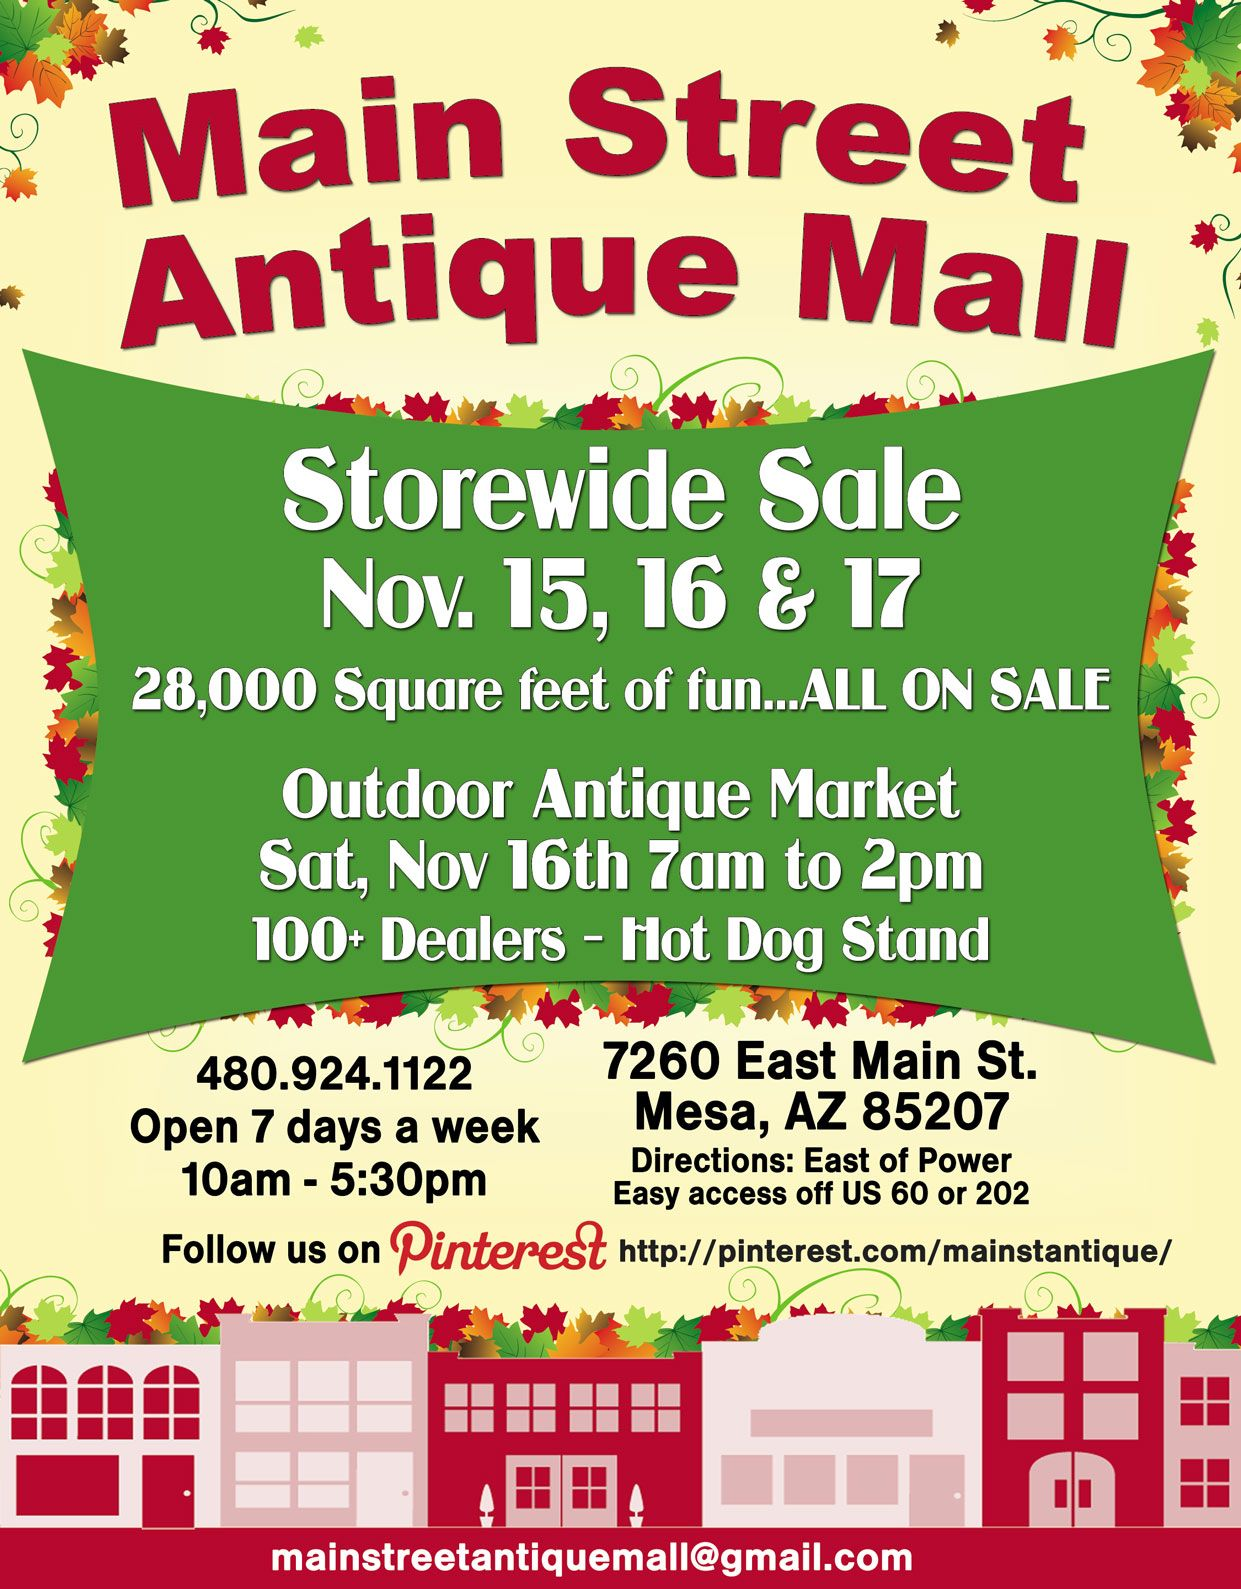 Don's miss our Storewide Sale November 15th, 16th & 17th